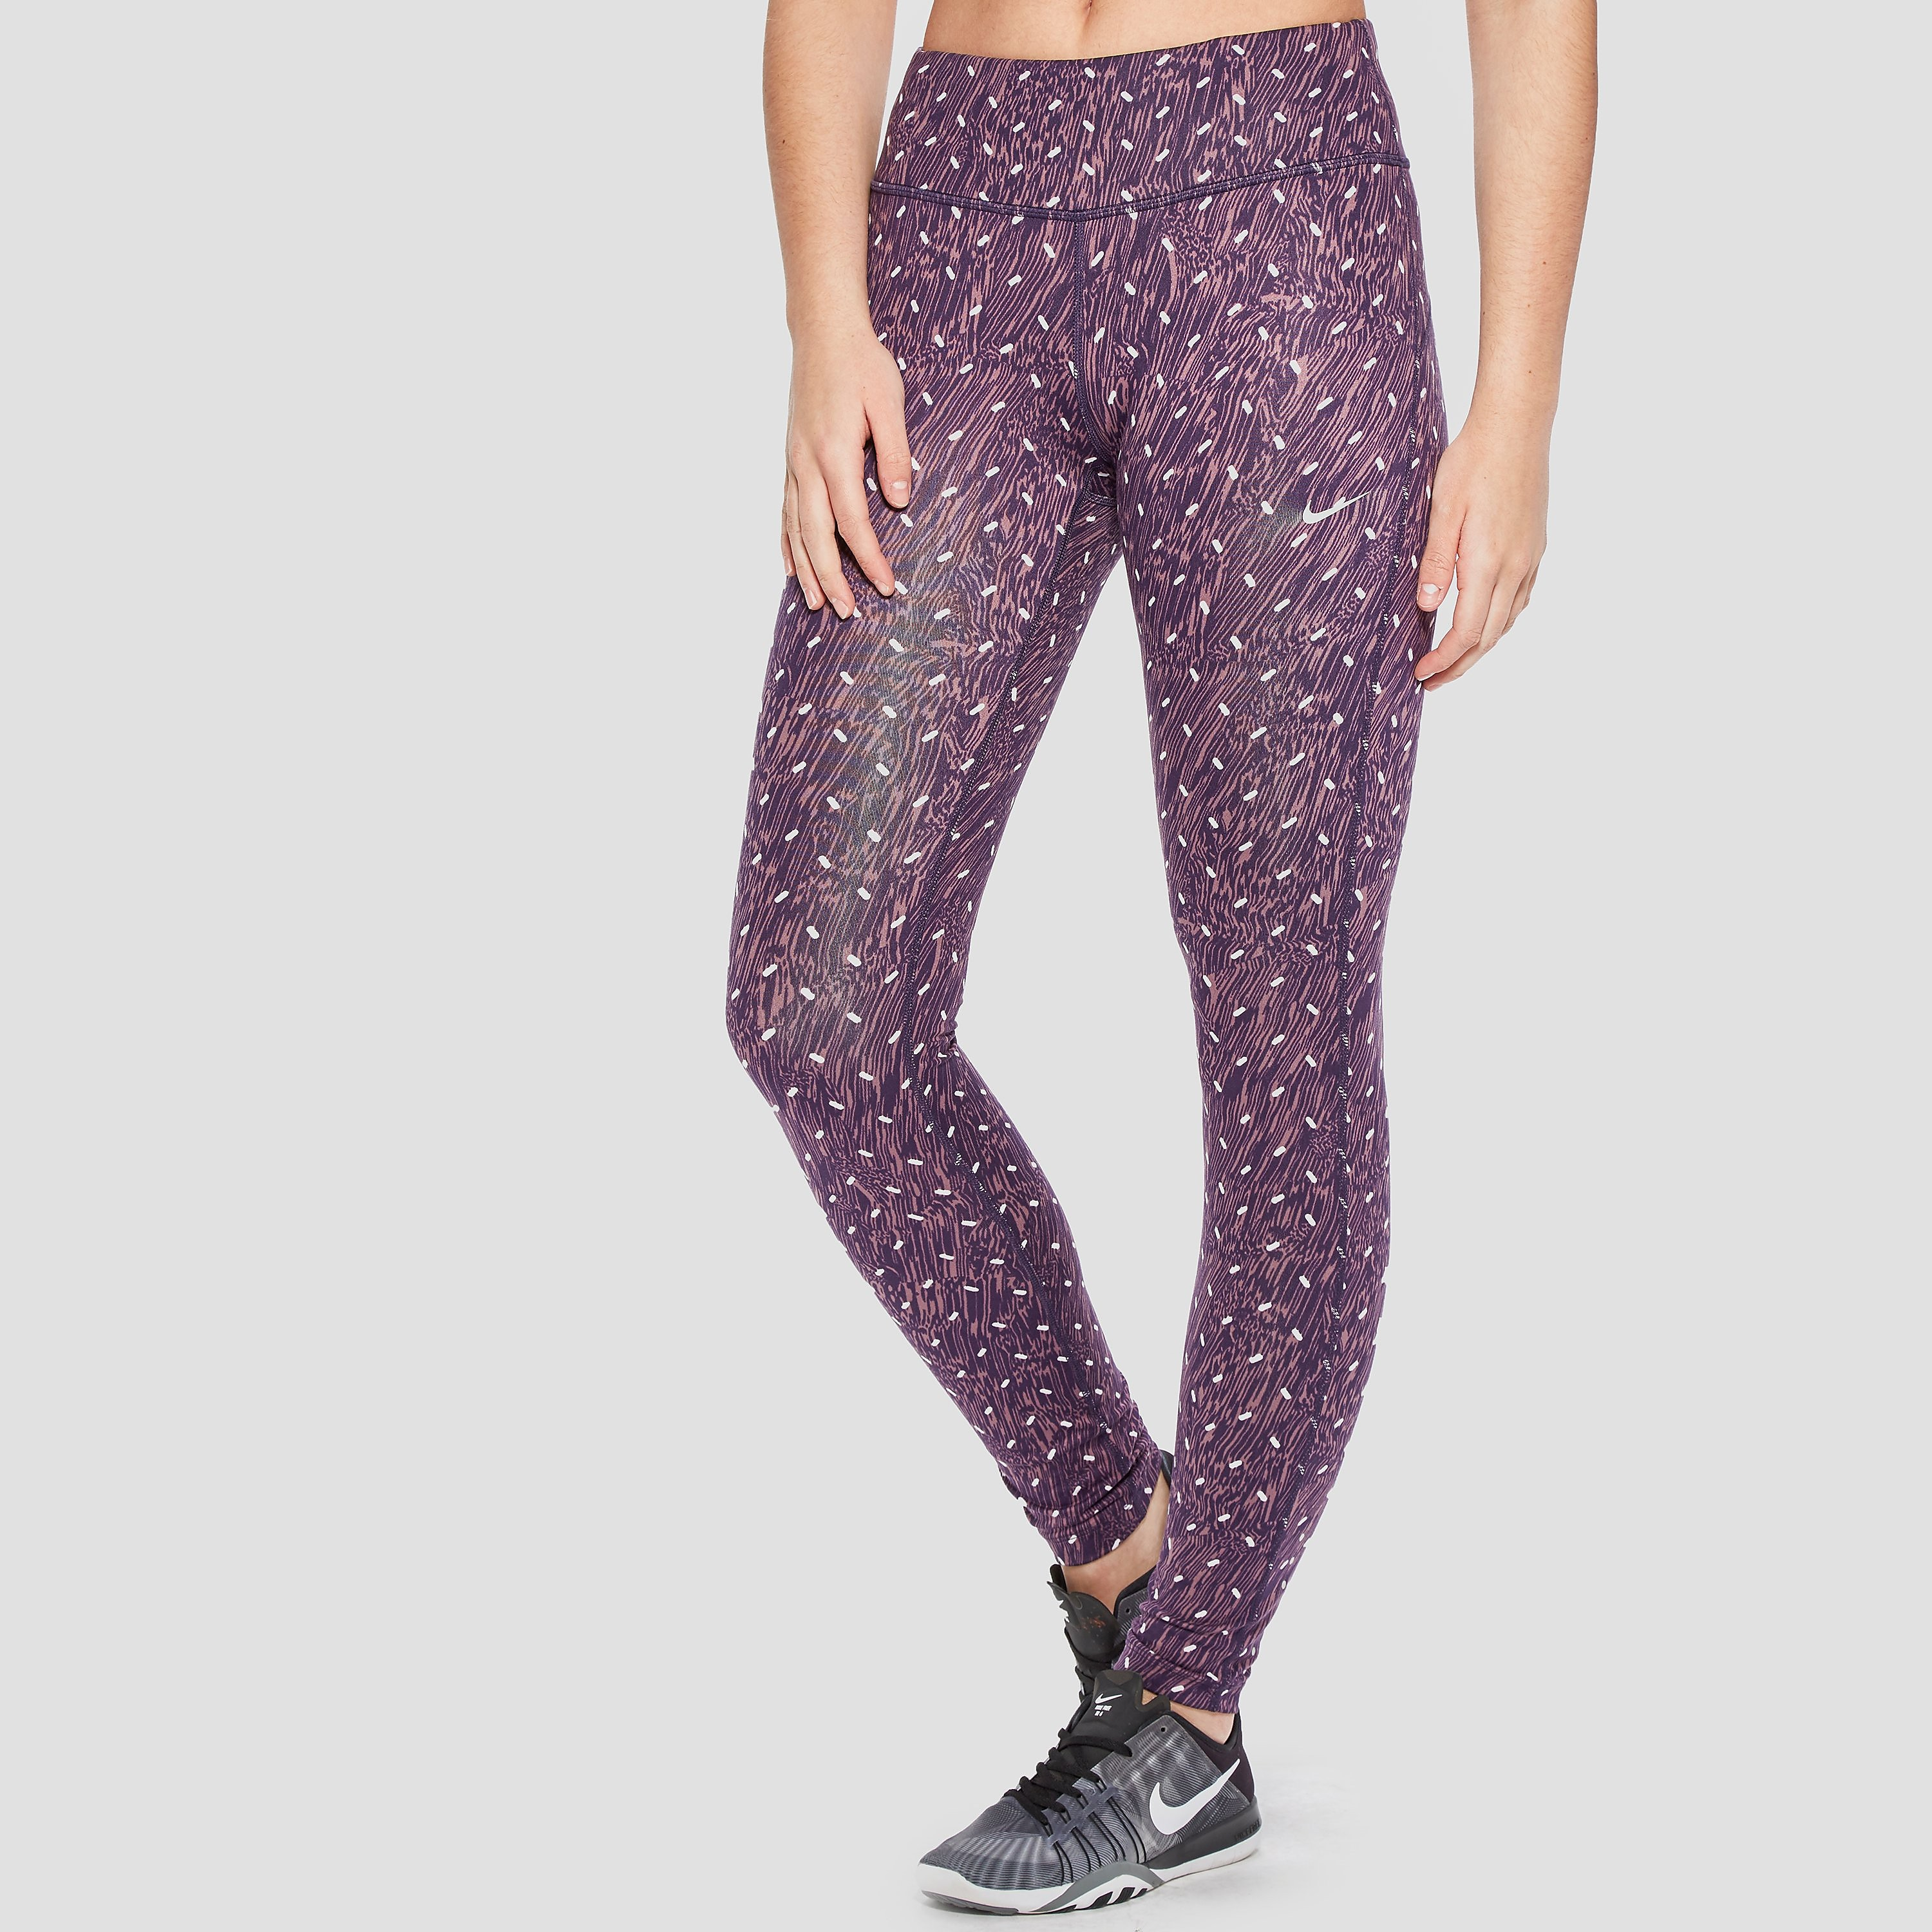 Nike Power Epic Women's Running Tights